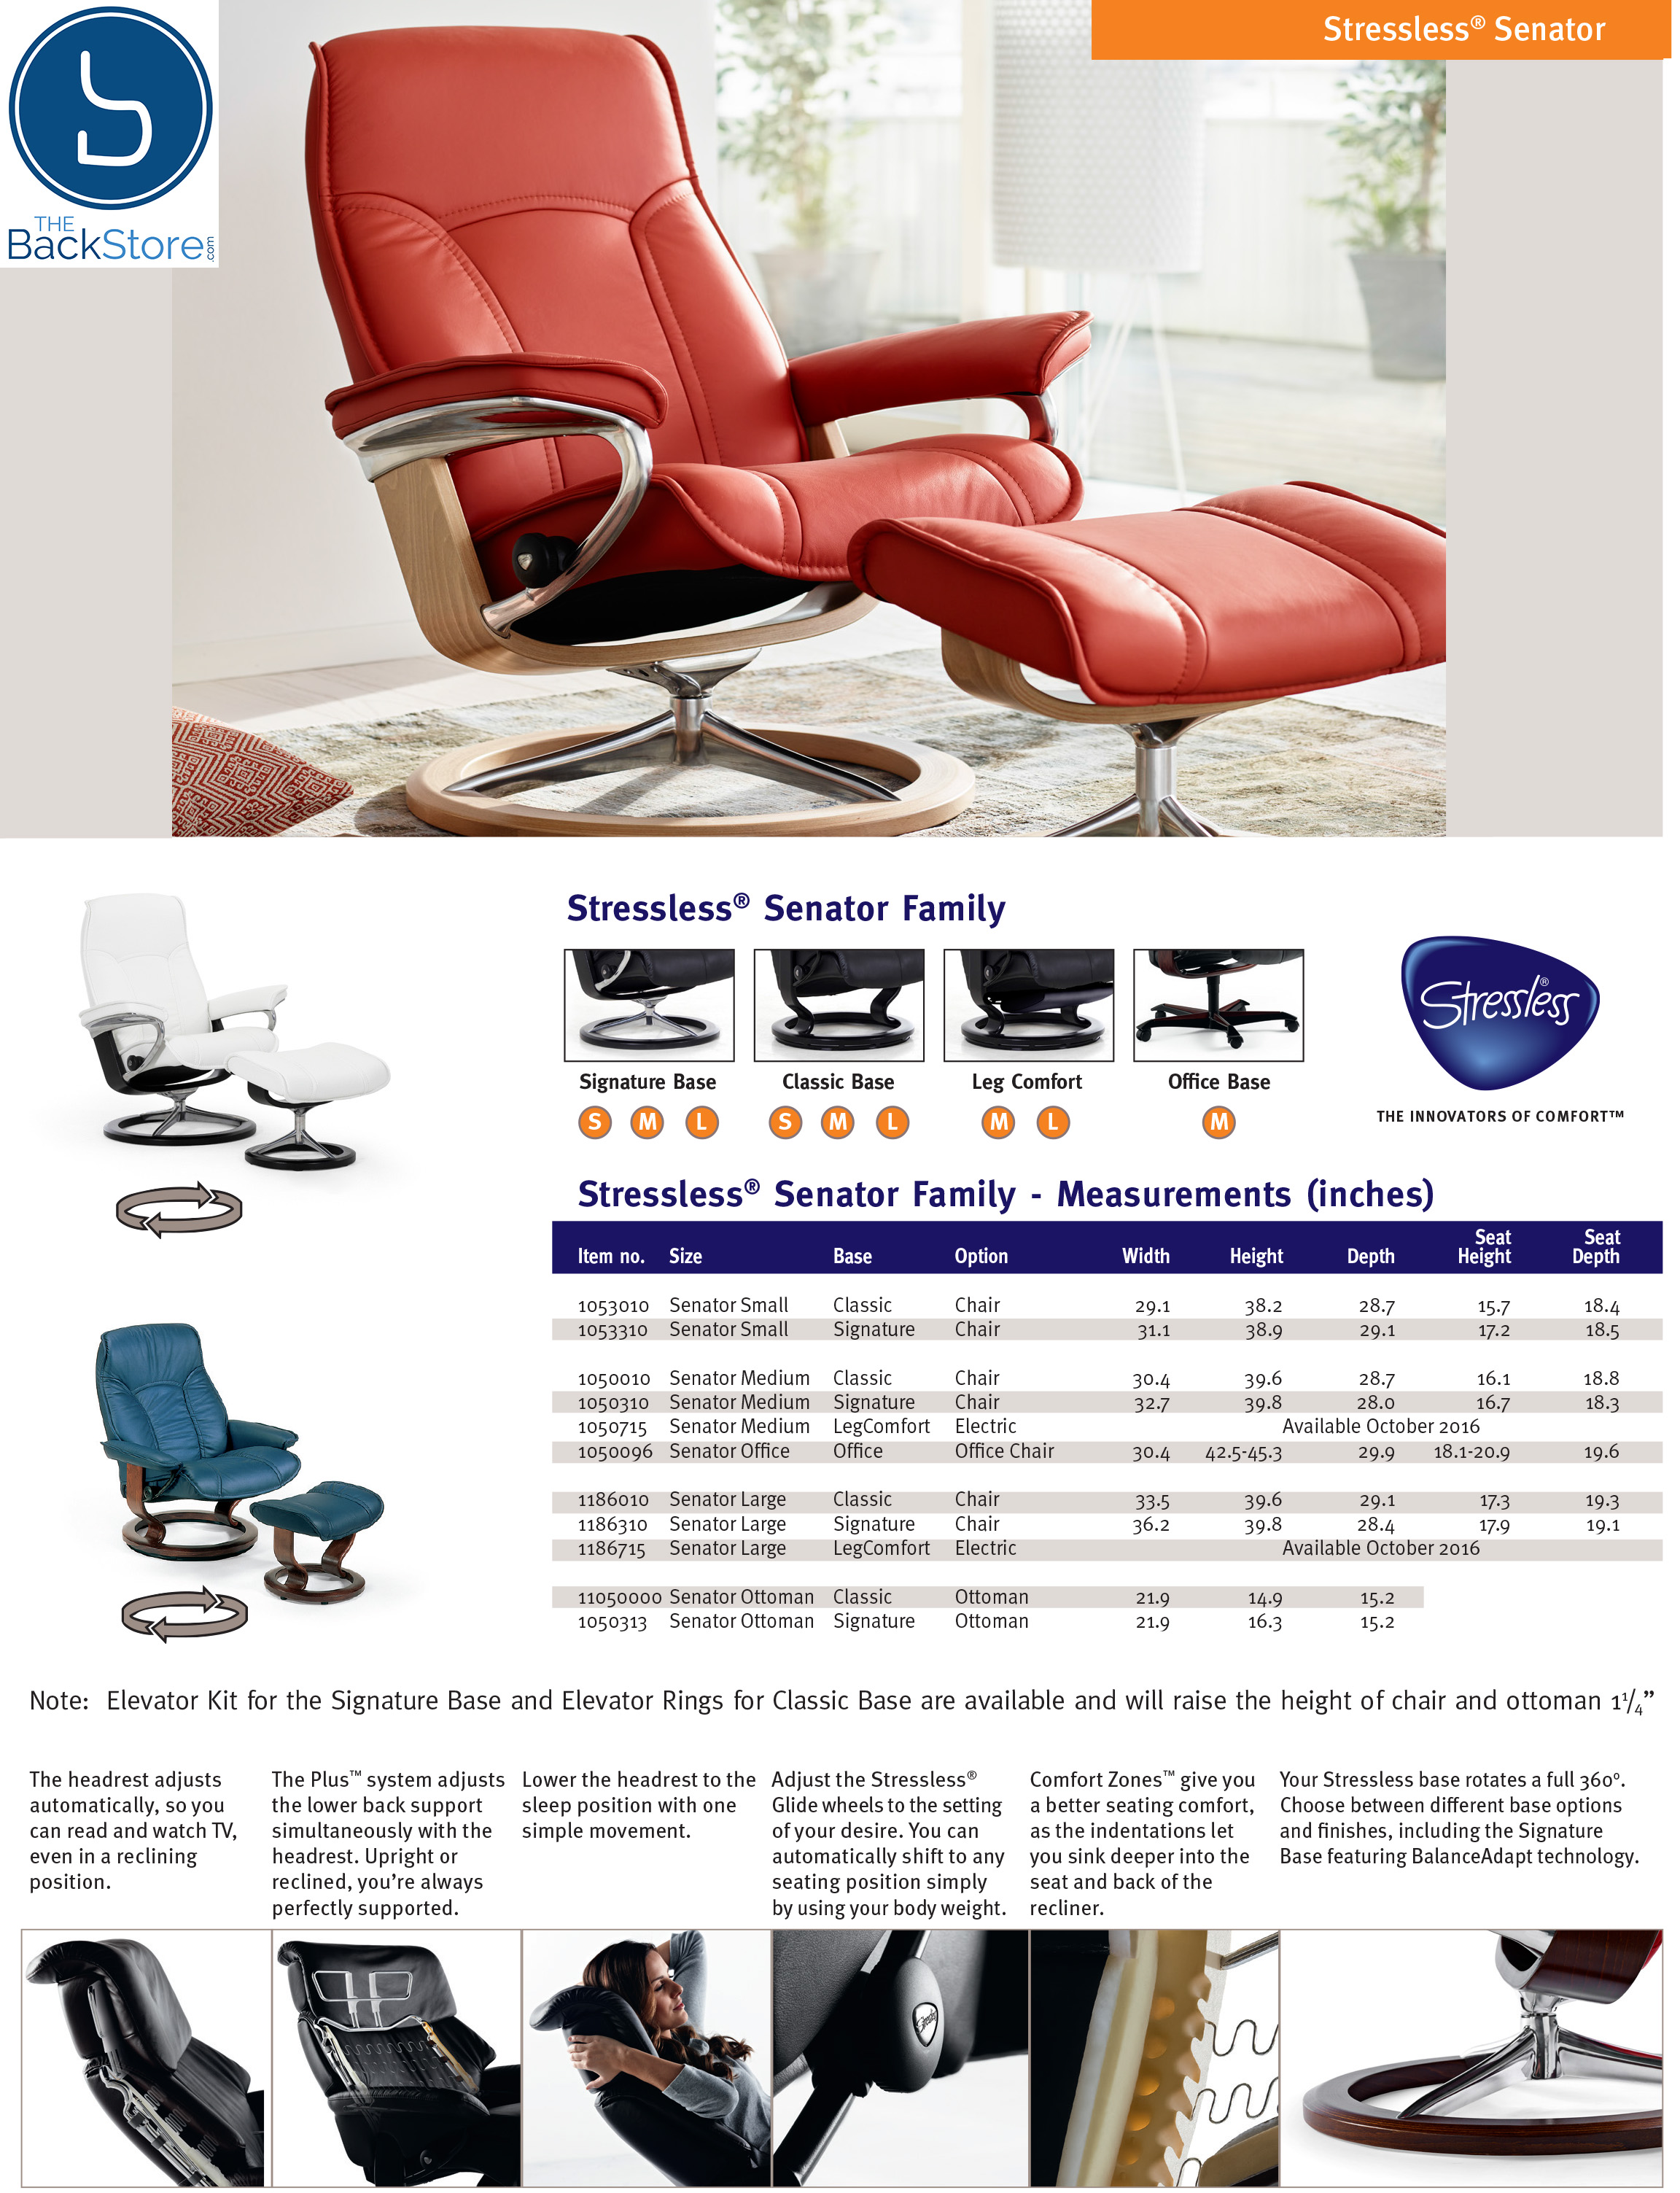 Incredible Stressless Governor Paloma Taupe Leather Recliner Chair And Ottoman By Ekornes Gmtry Best Dining Table And Chair Ideas Images Gmtryco